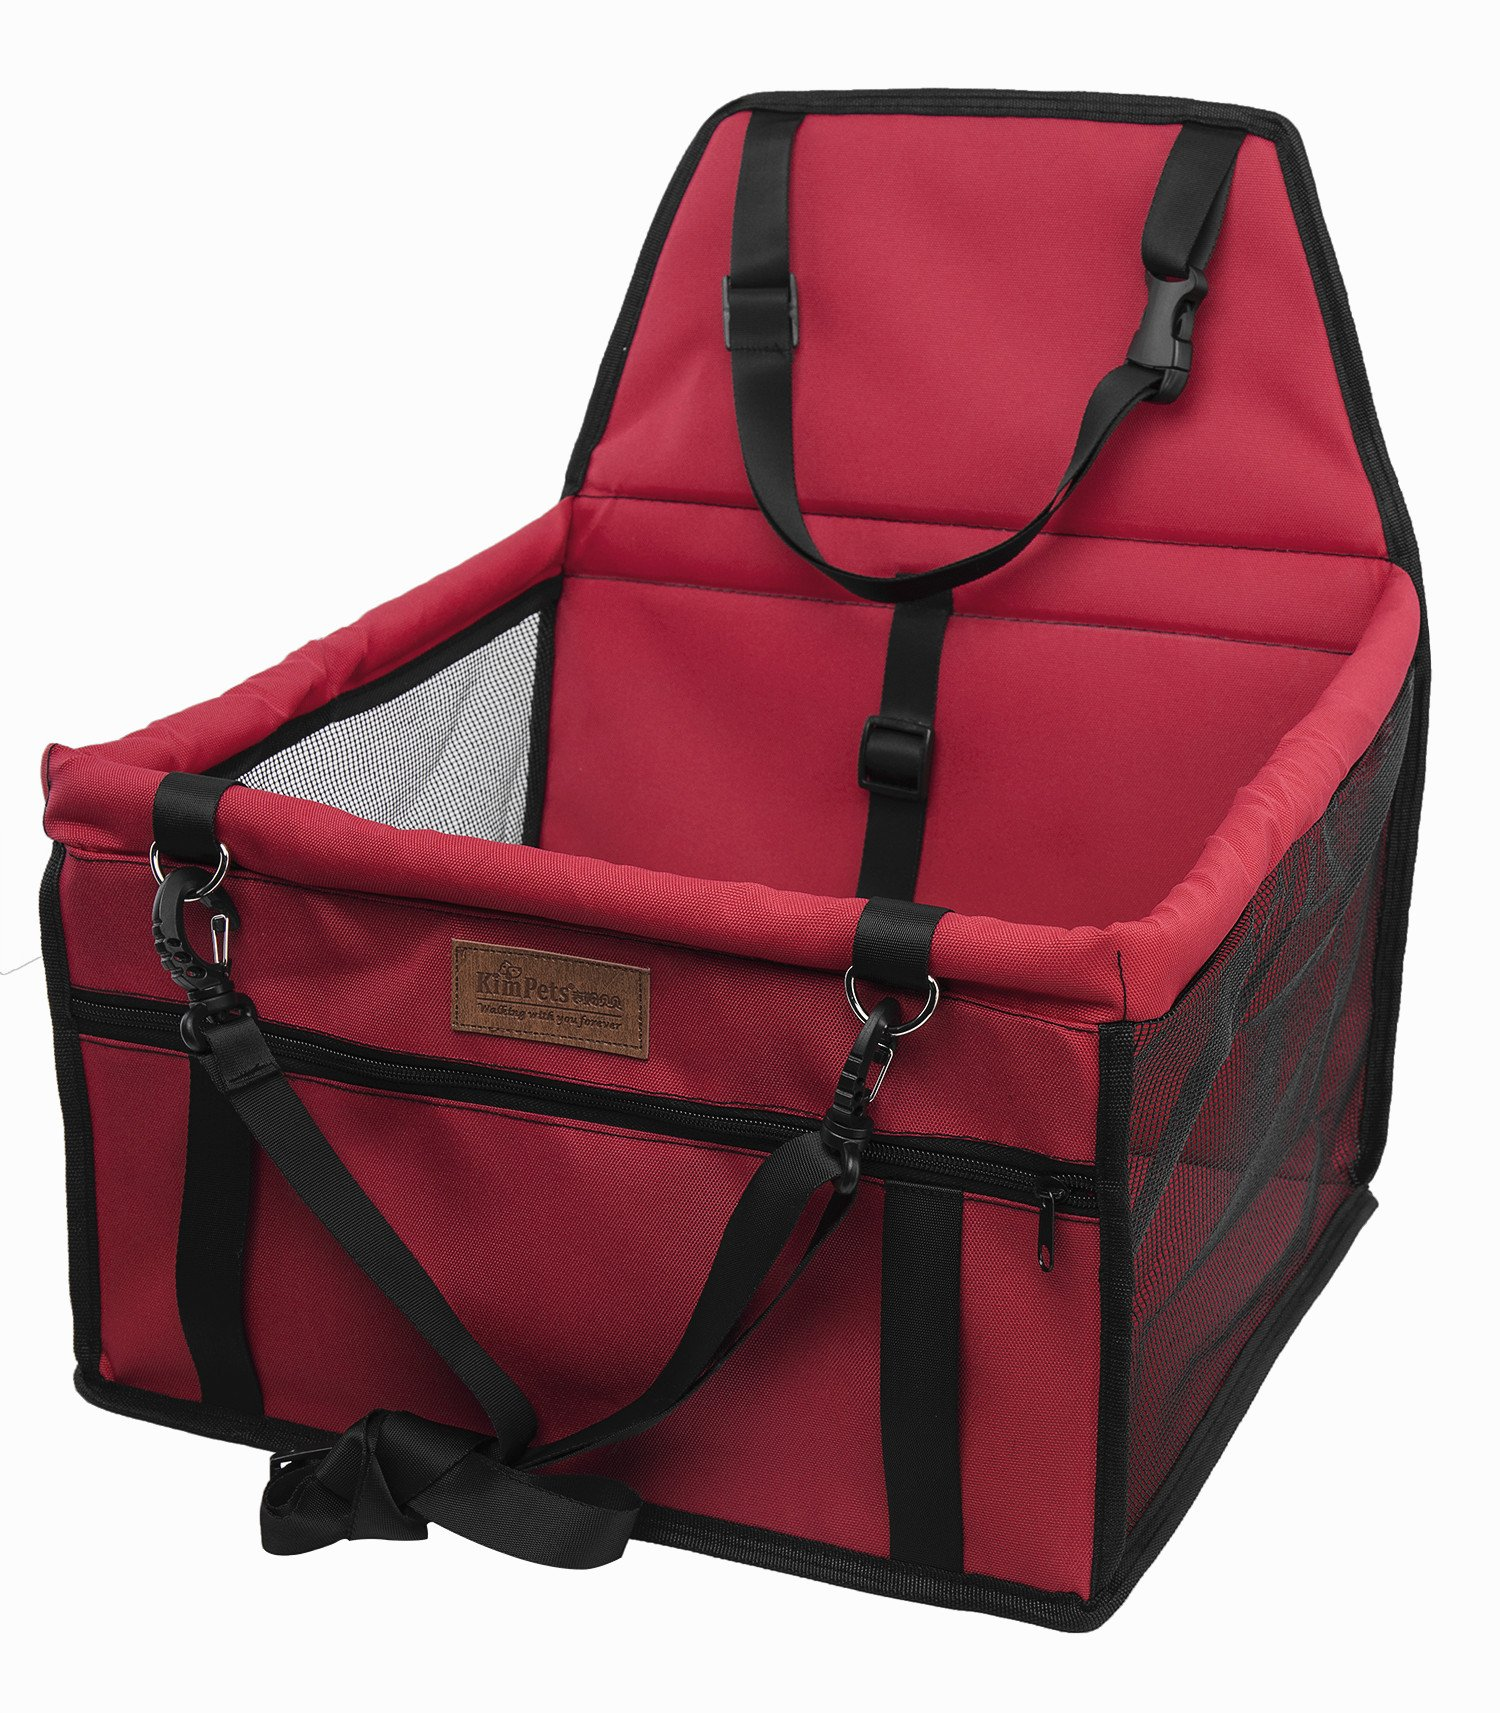 SWIHEL Pet Car Booster Seat Travel Carrier Cage, Oxford Breathable Folding Soft Washable Travel Bags for Dogs Cats or Other Small Pet. [ RED ]